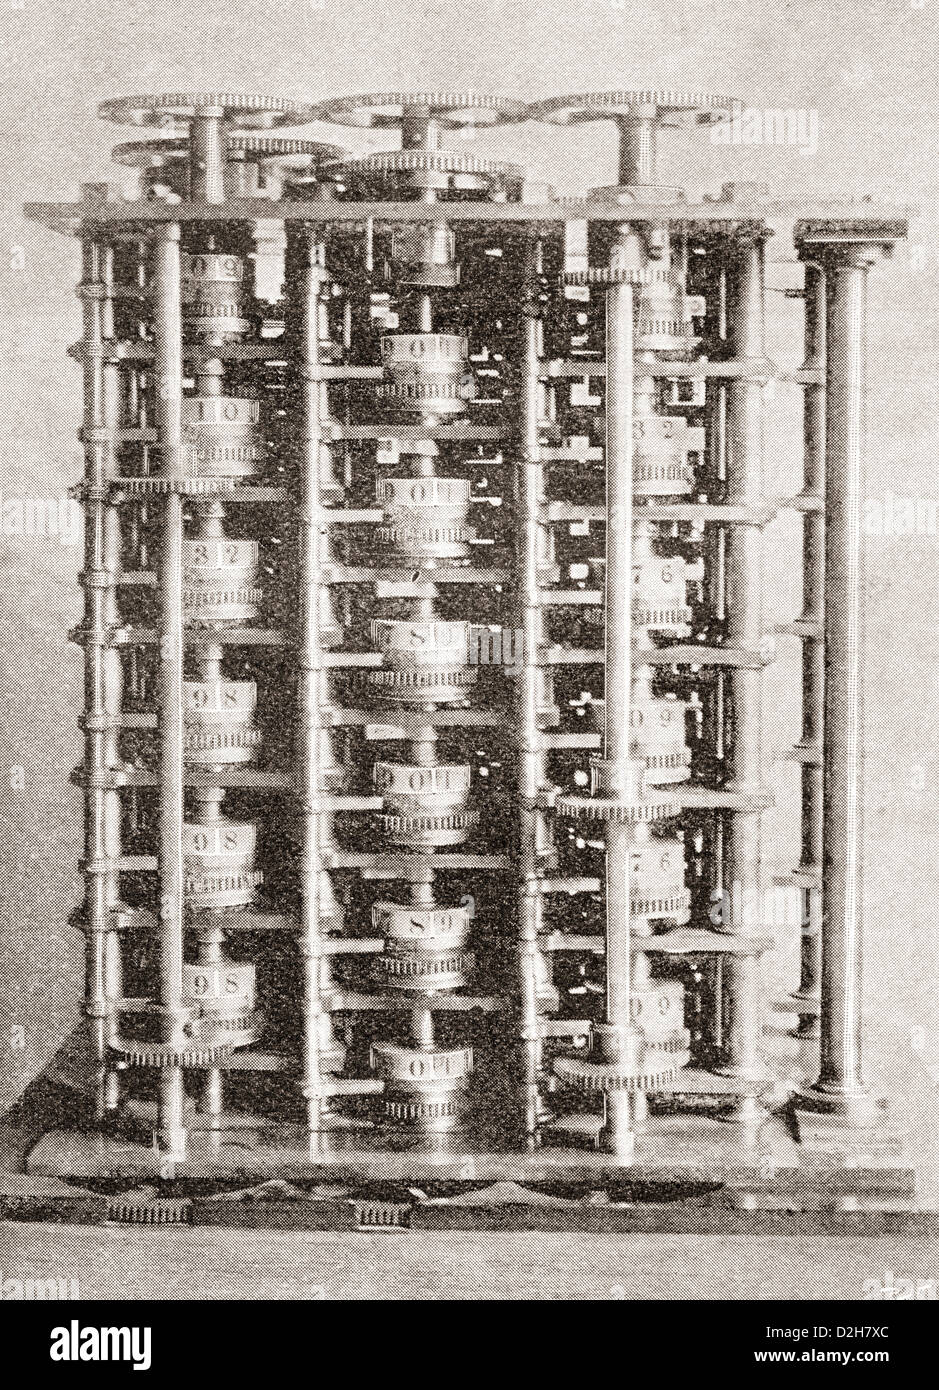 Difference engine of the Babbage Calculating Machine, invented by Charles Babbage in 1822. - Stock Image